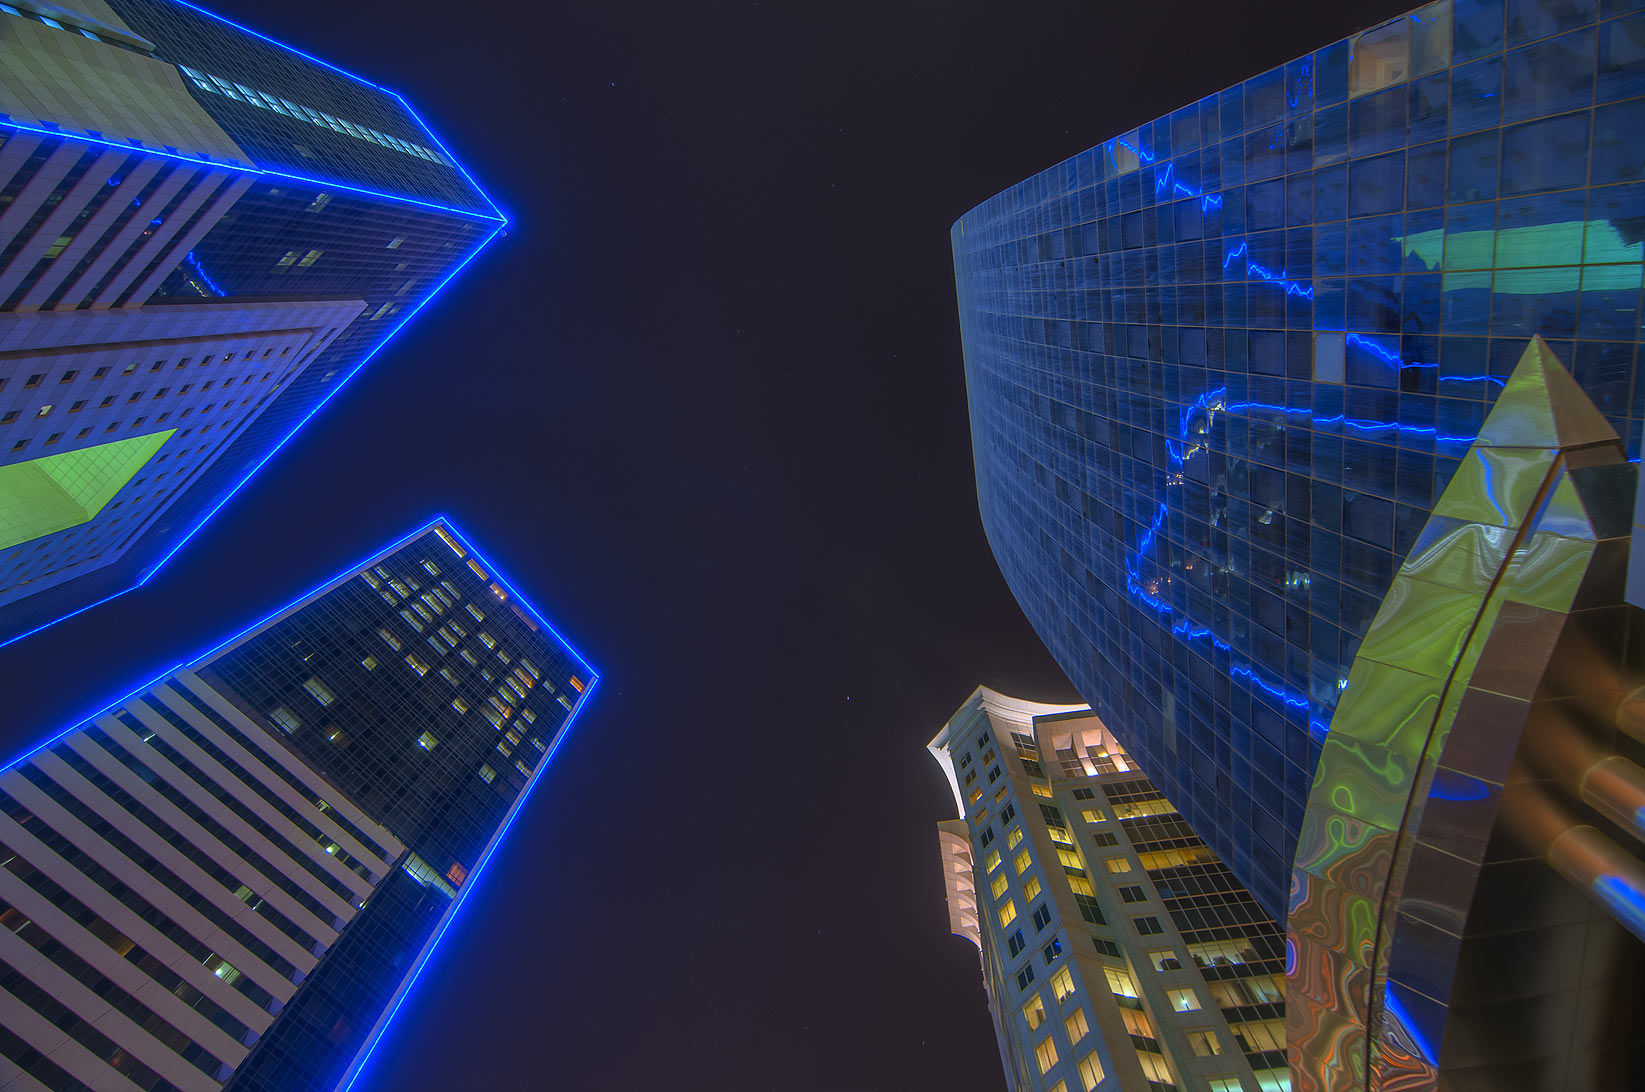 Blue lights of Ezdan Hotel in West Bay. Doha, Qatar